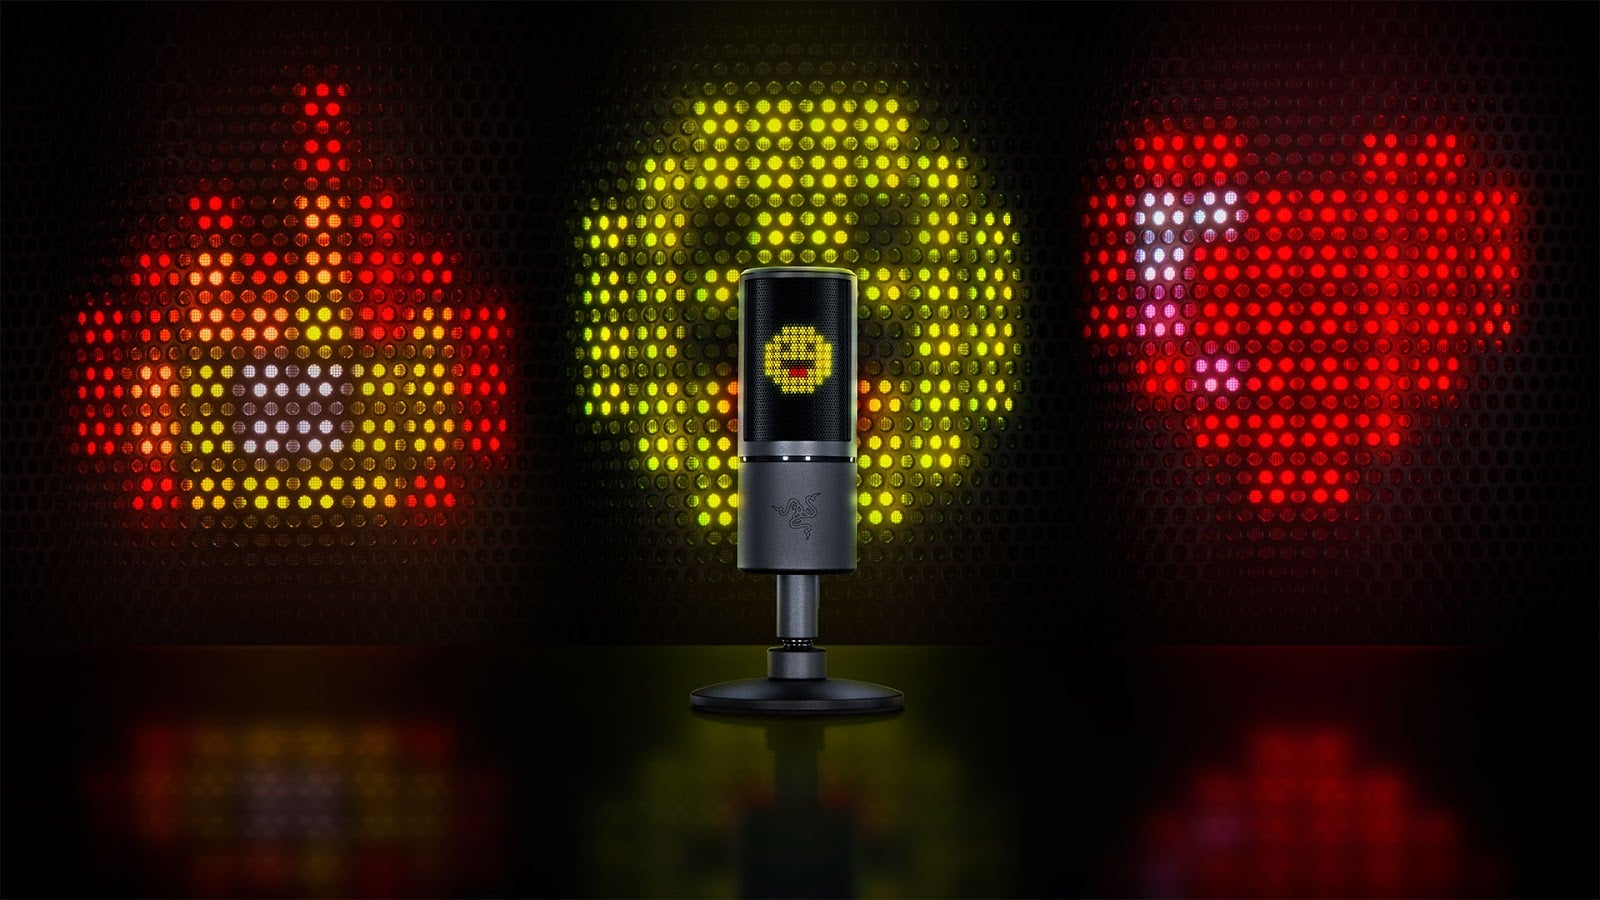 New Streaming Mic Displays Emoticons, Because Why Not